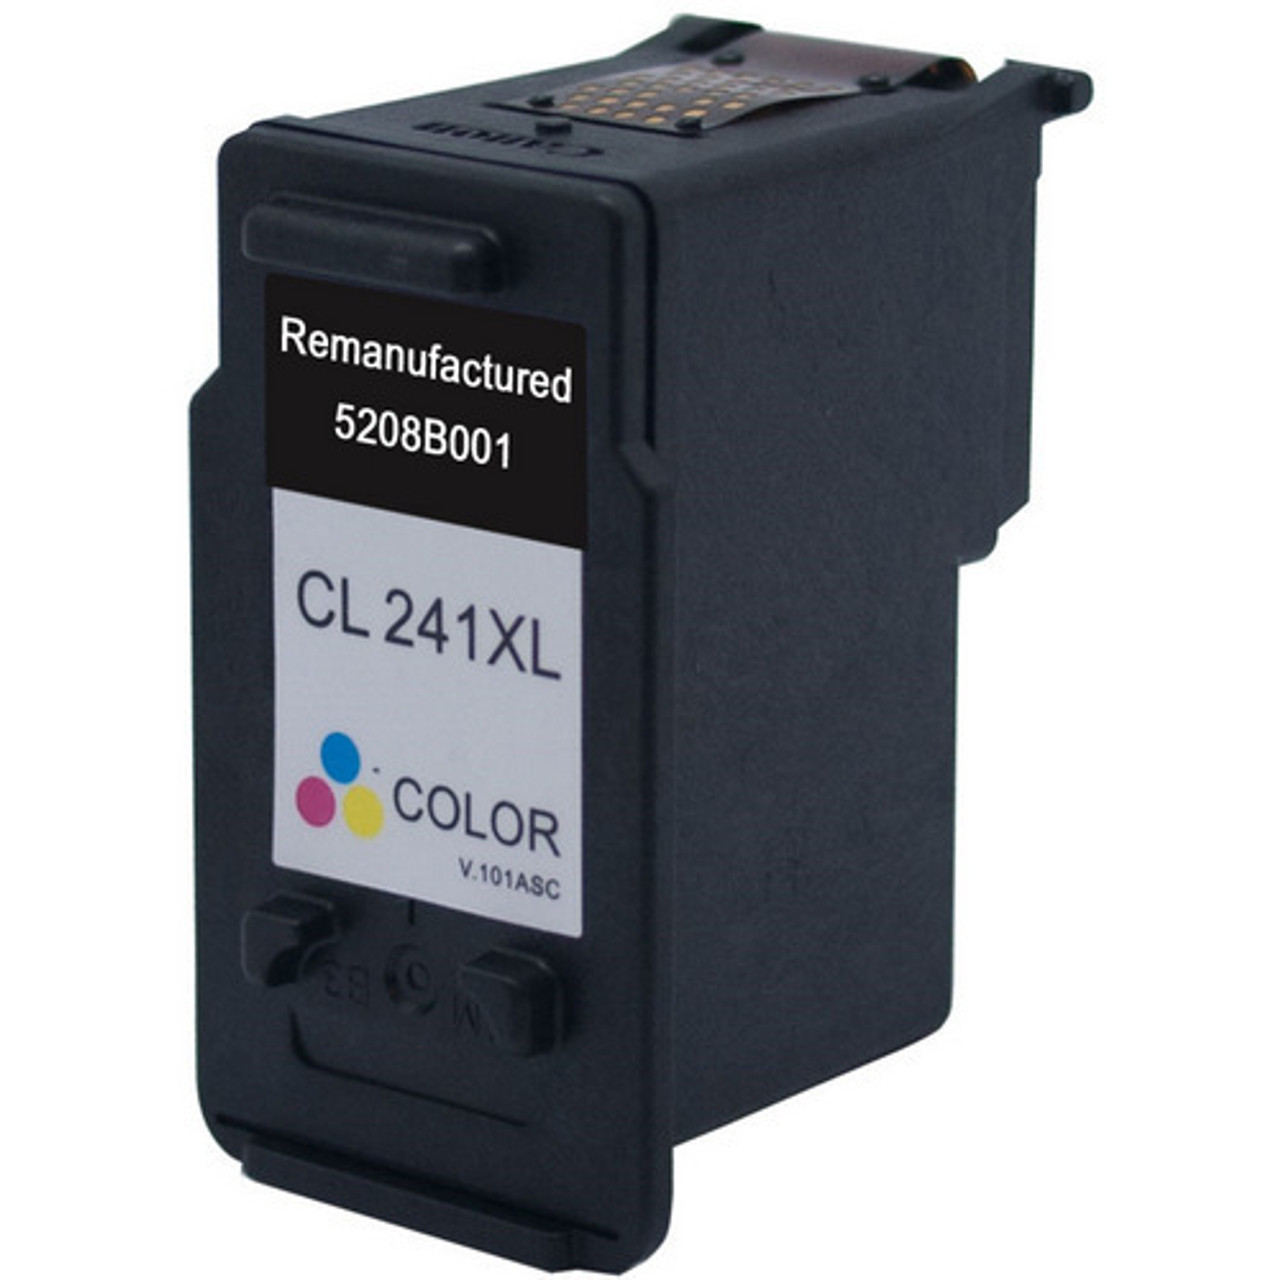 SuppliesOutlet Remanufactured Ink Cartridge Replacement for Canon CL-241XL 5208B001 High Yield Color,1 Pack CL241XL